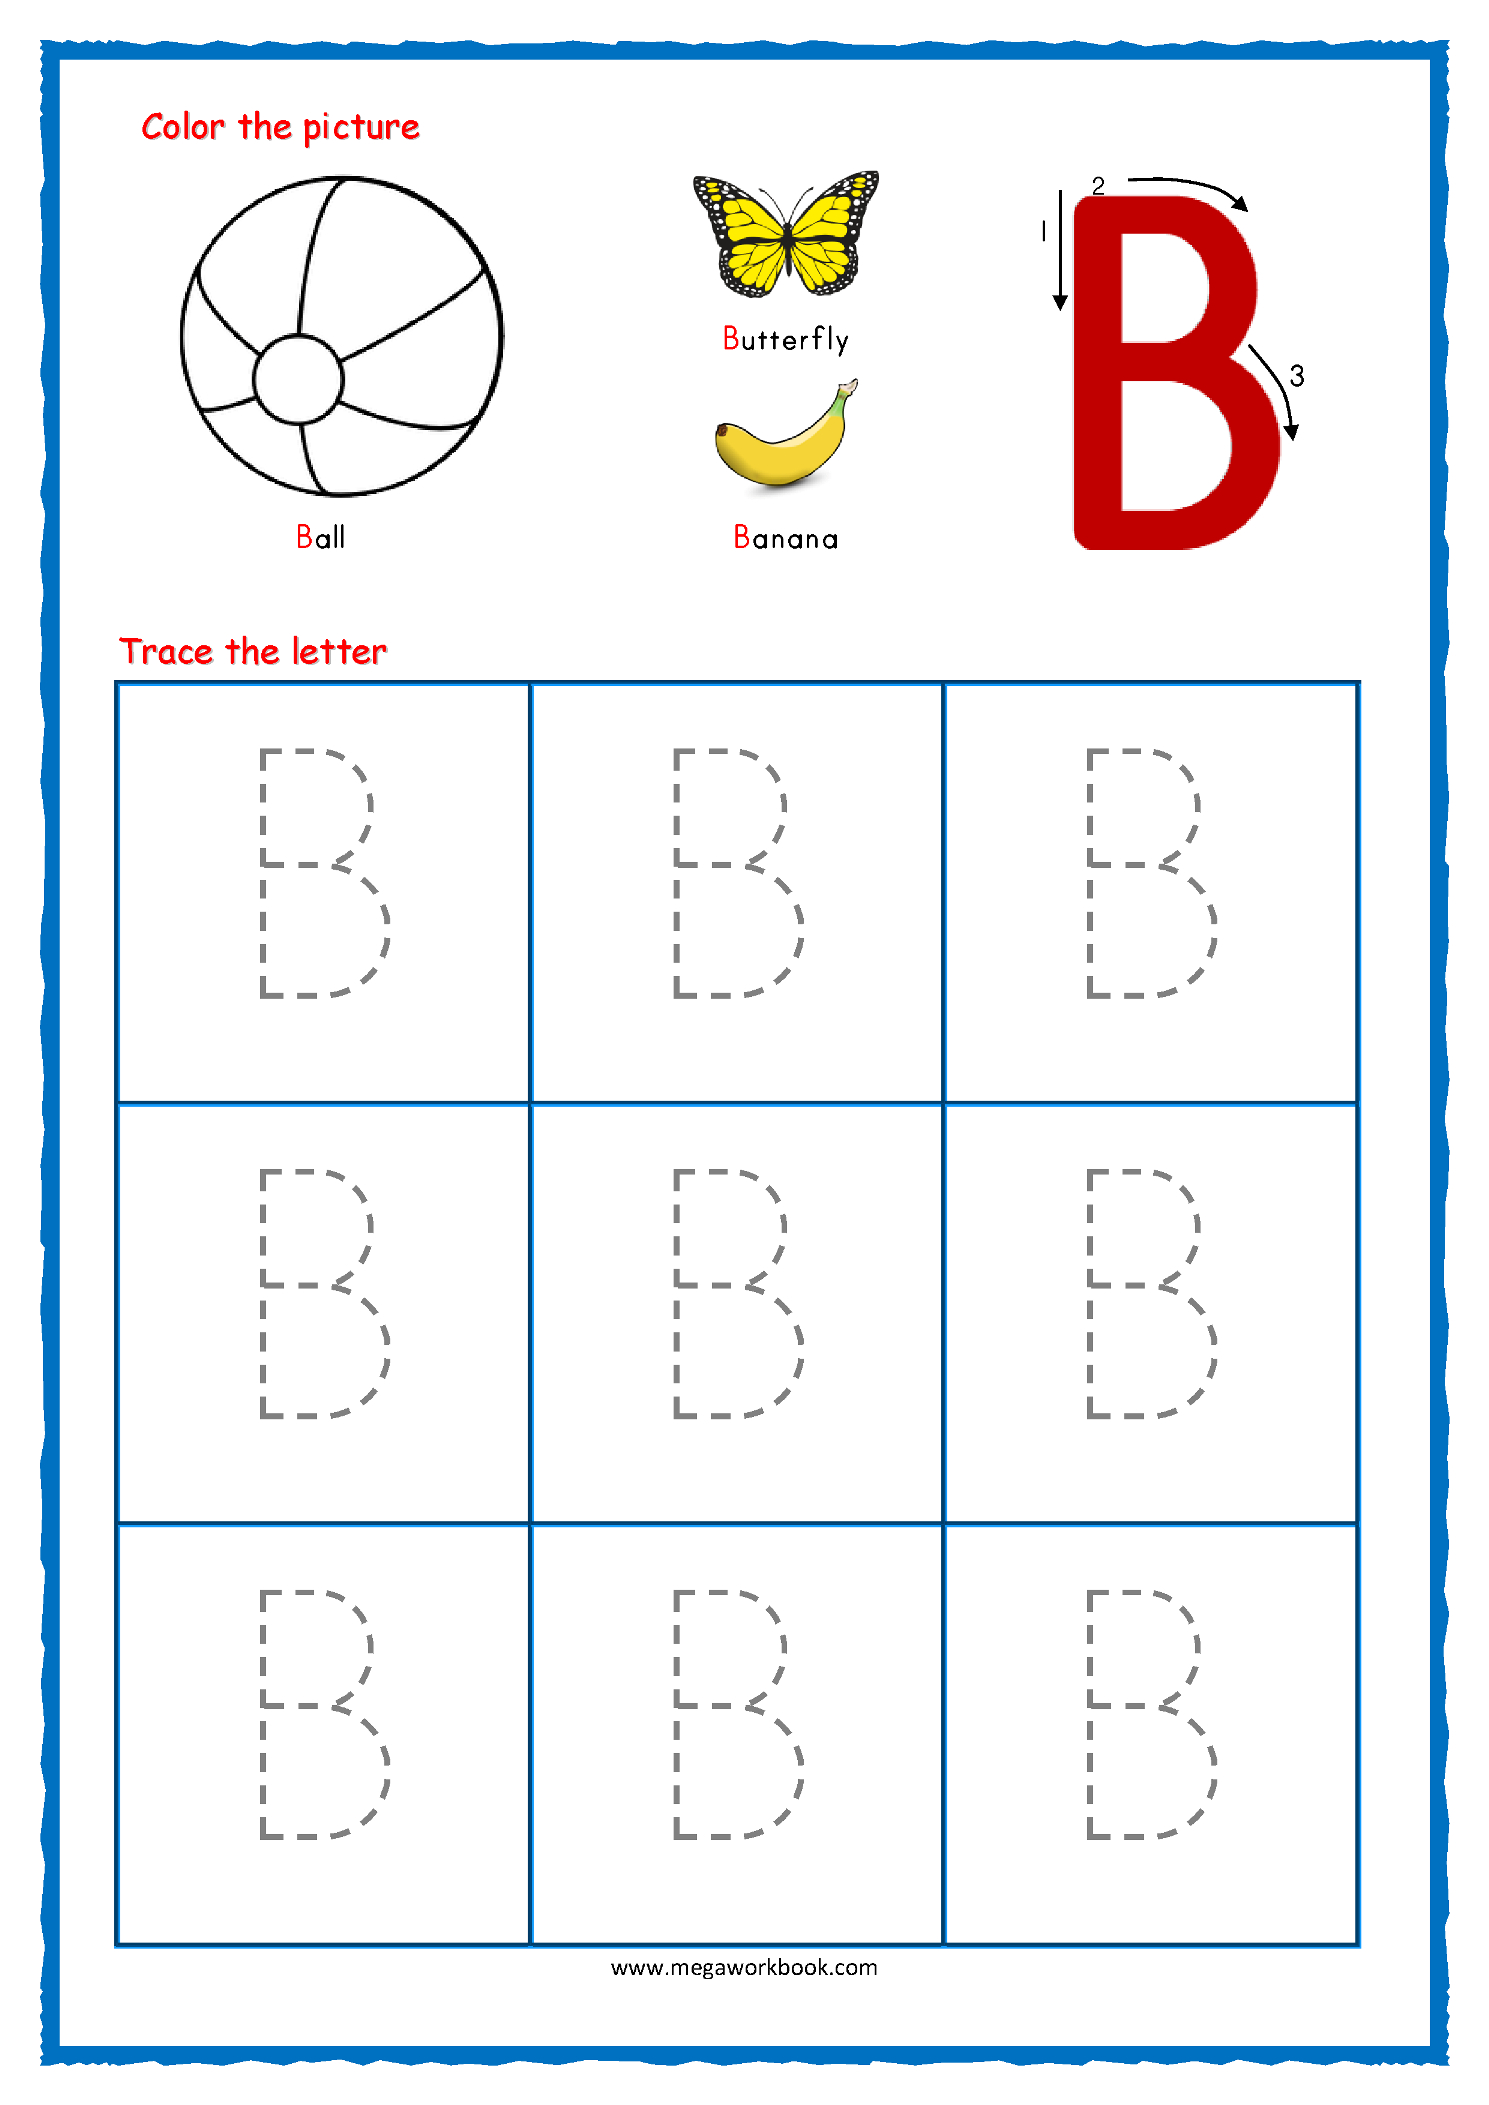 Tracing Letters - Alphabet Tracing - Capital Letters for Alphabet B Tracing